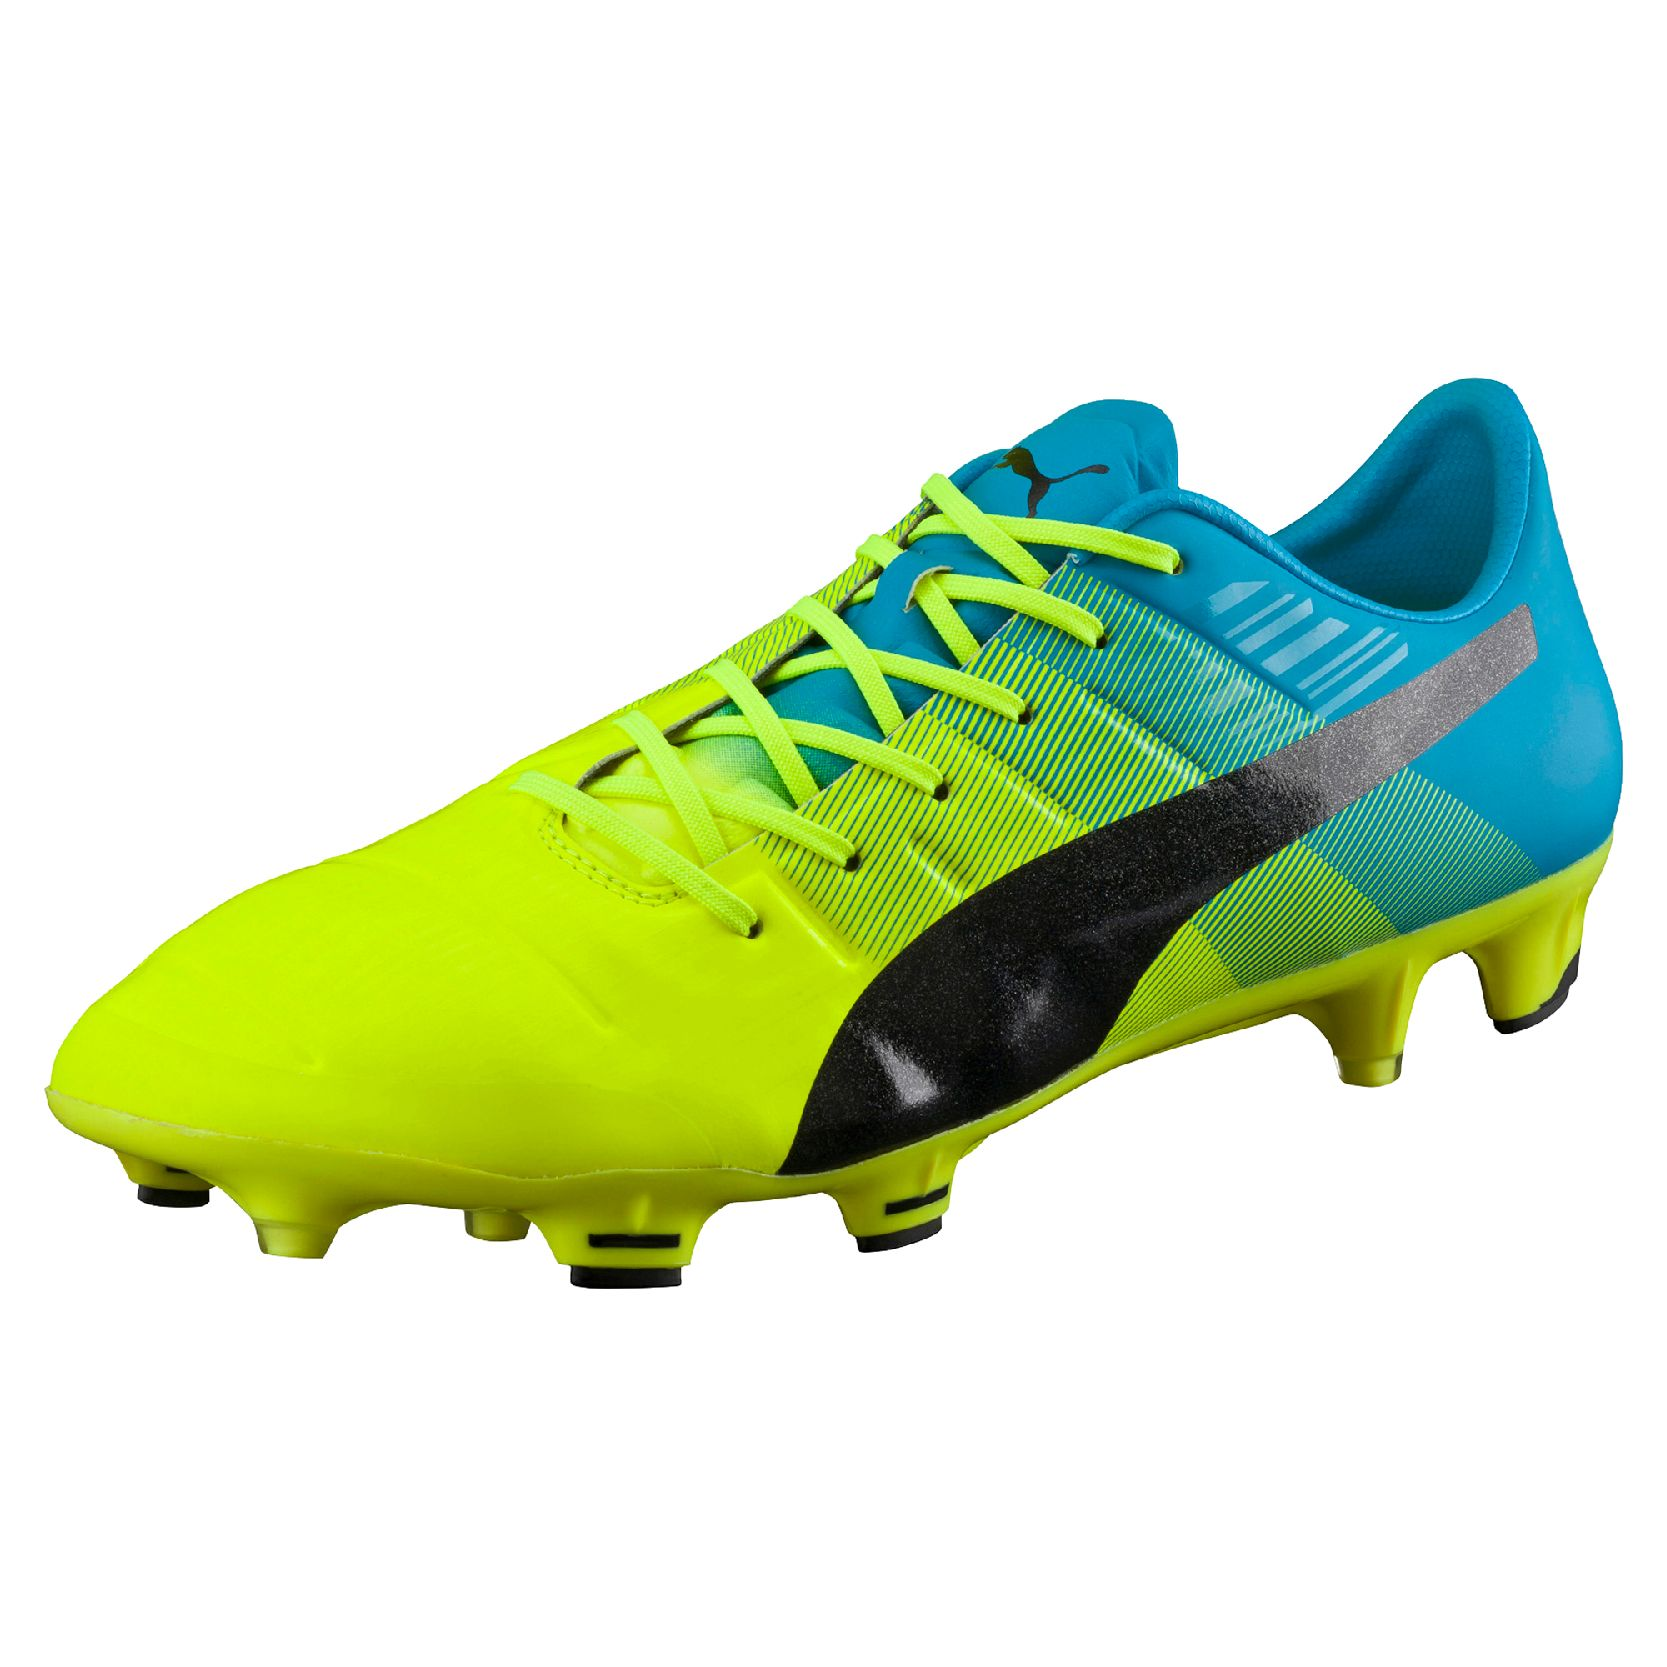 Puma evoPOWER 1.3 - Footy Boots